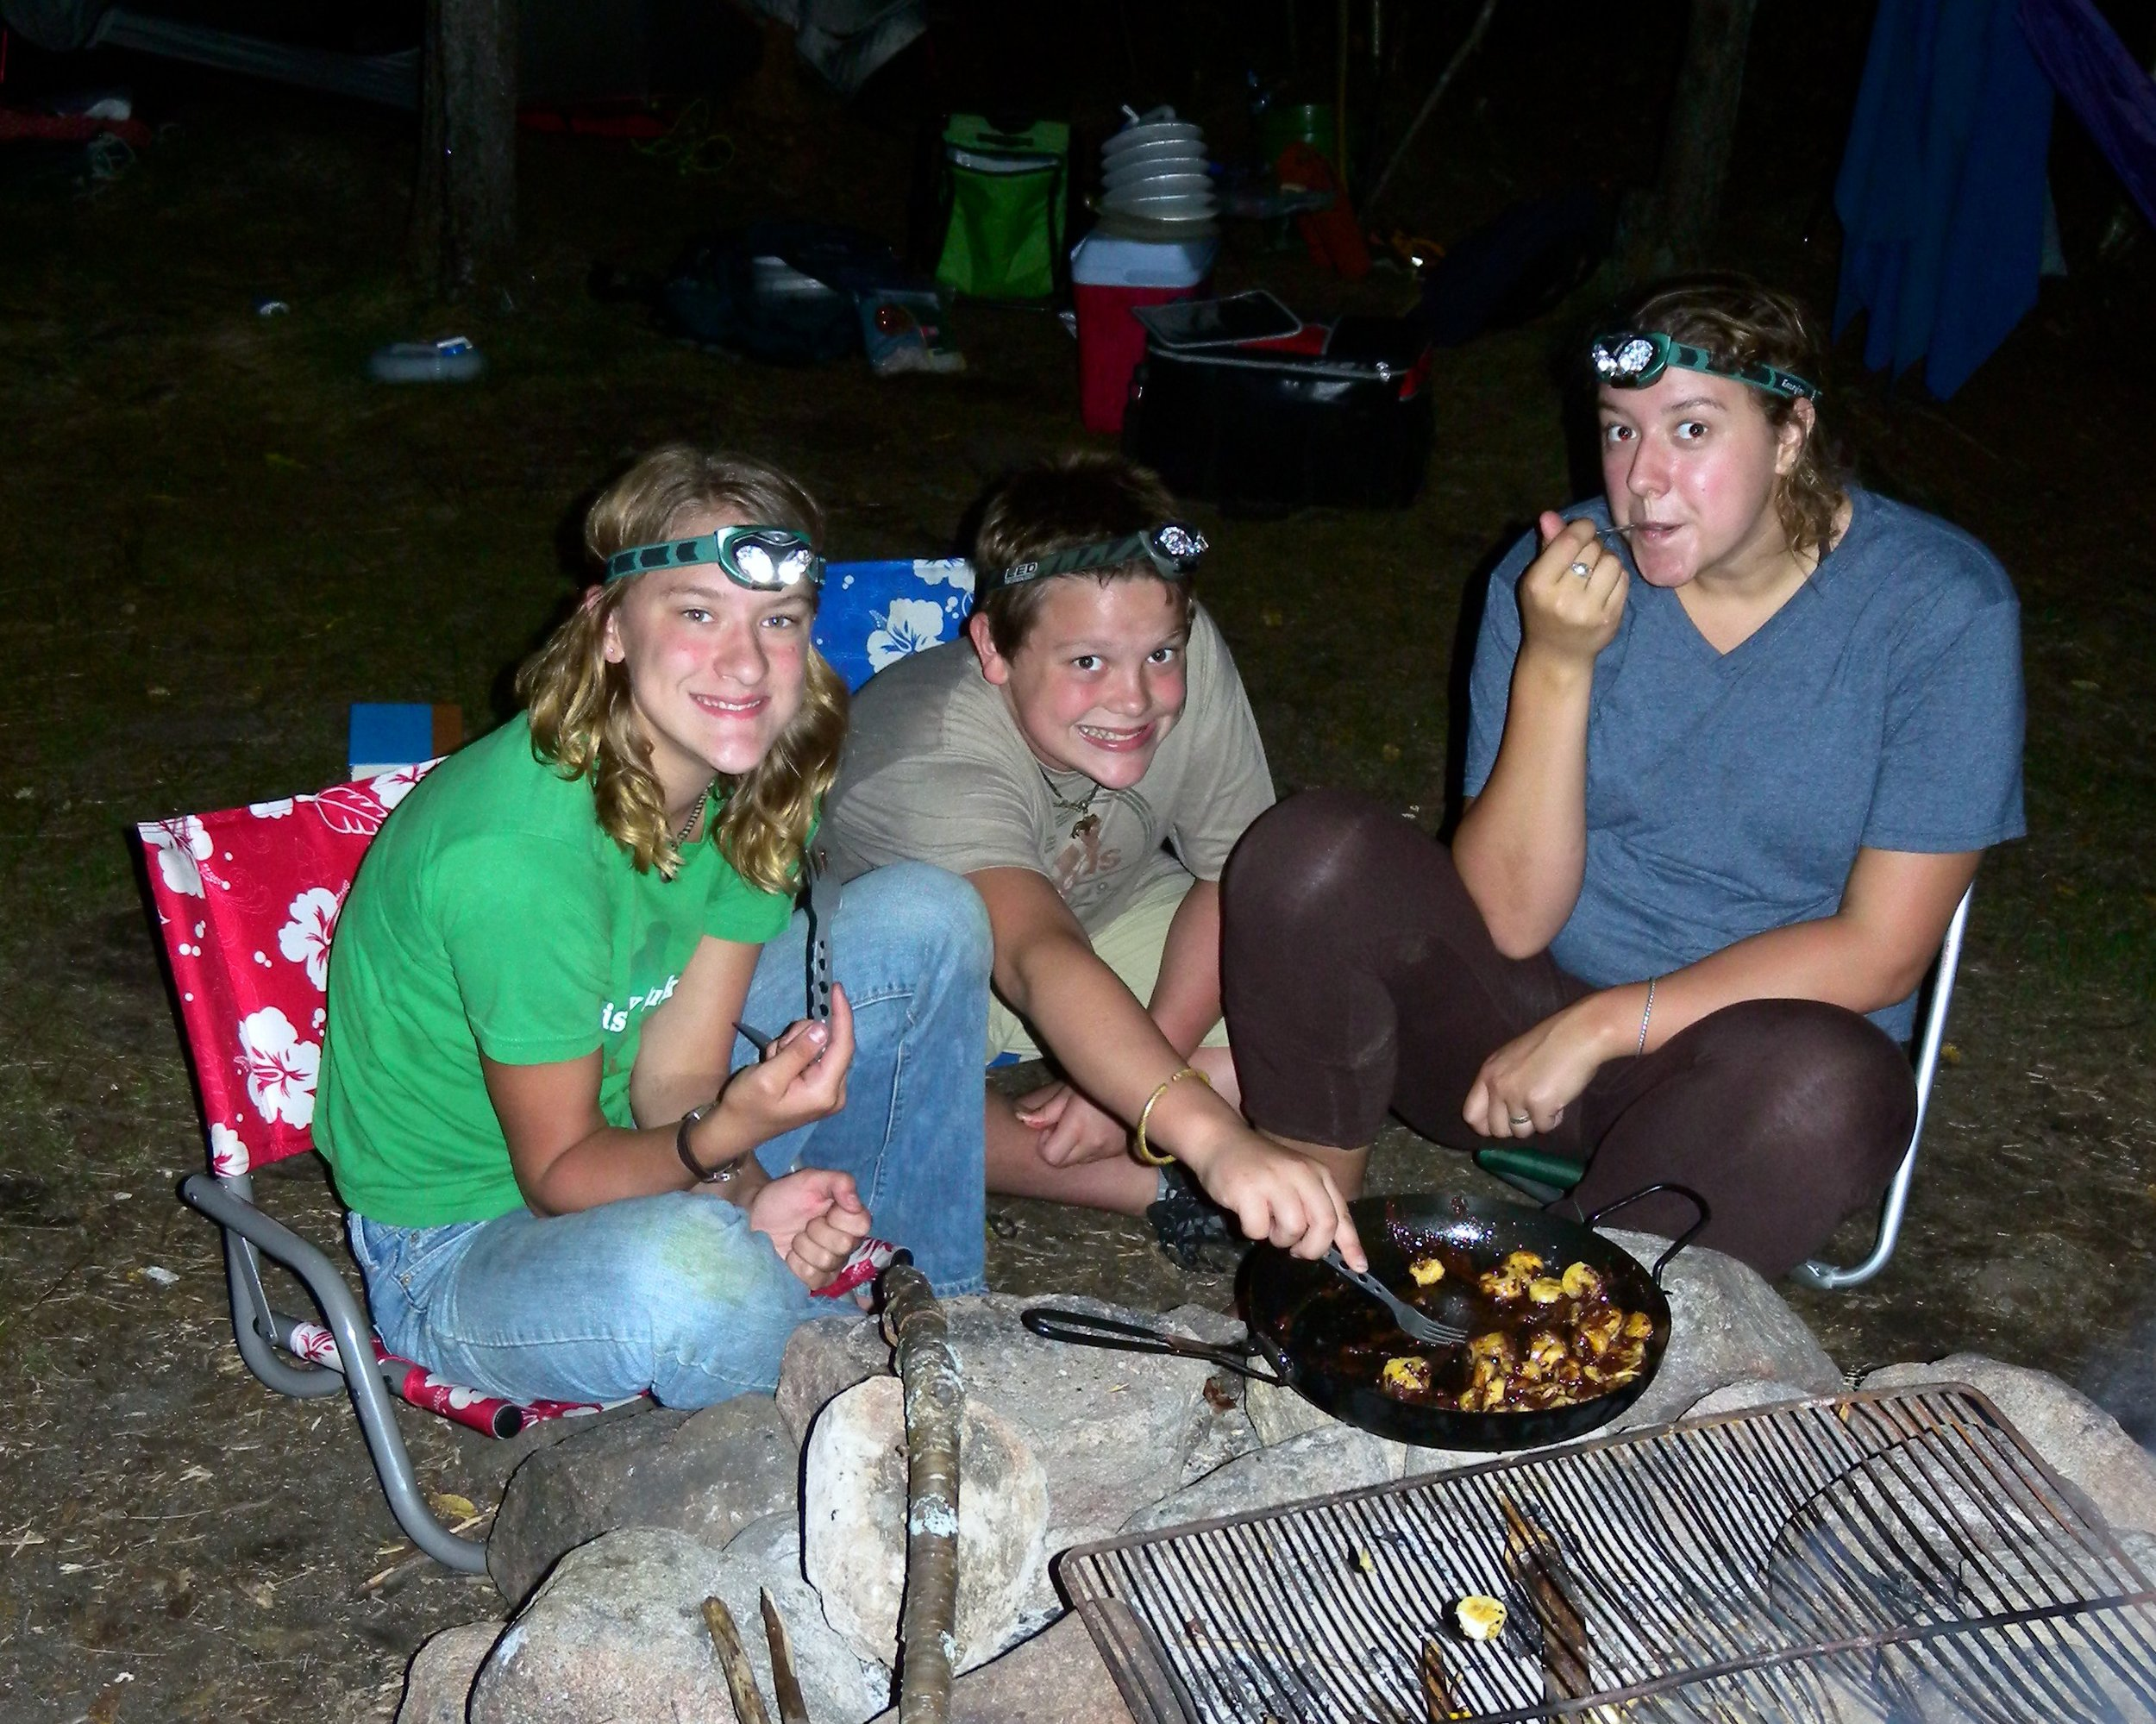 My children, Louisa, Jens, and Liesl on our annual a backcountry family canoe-camping trip.